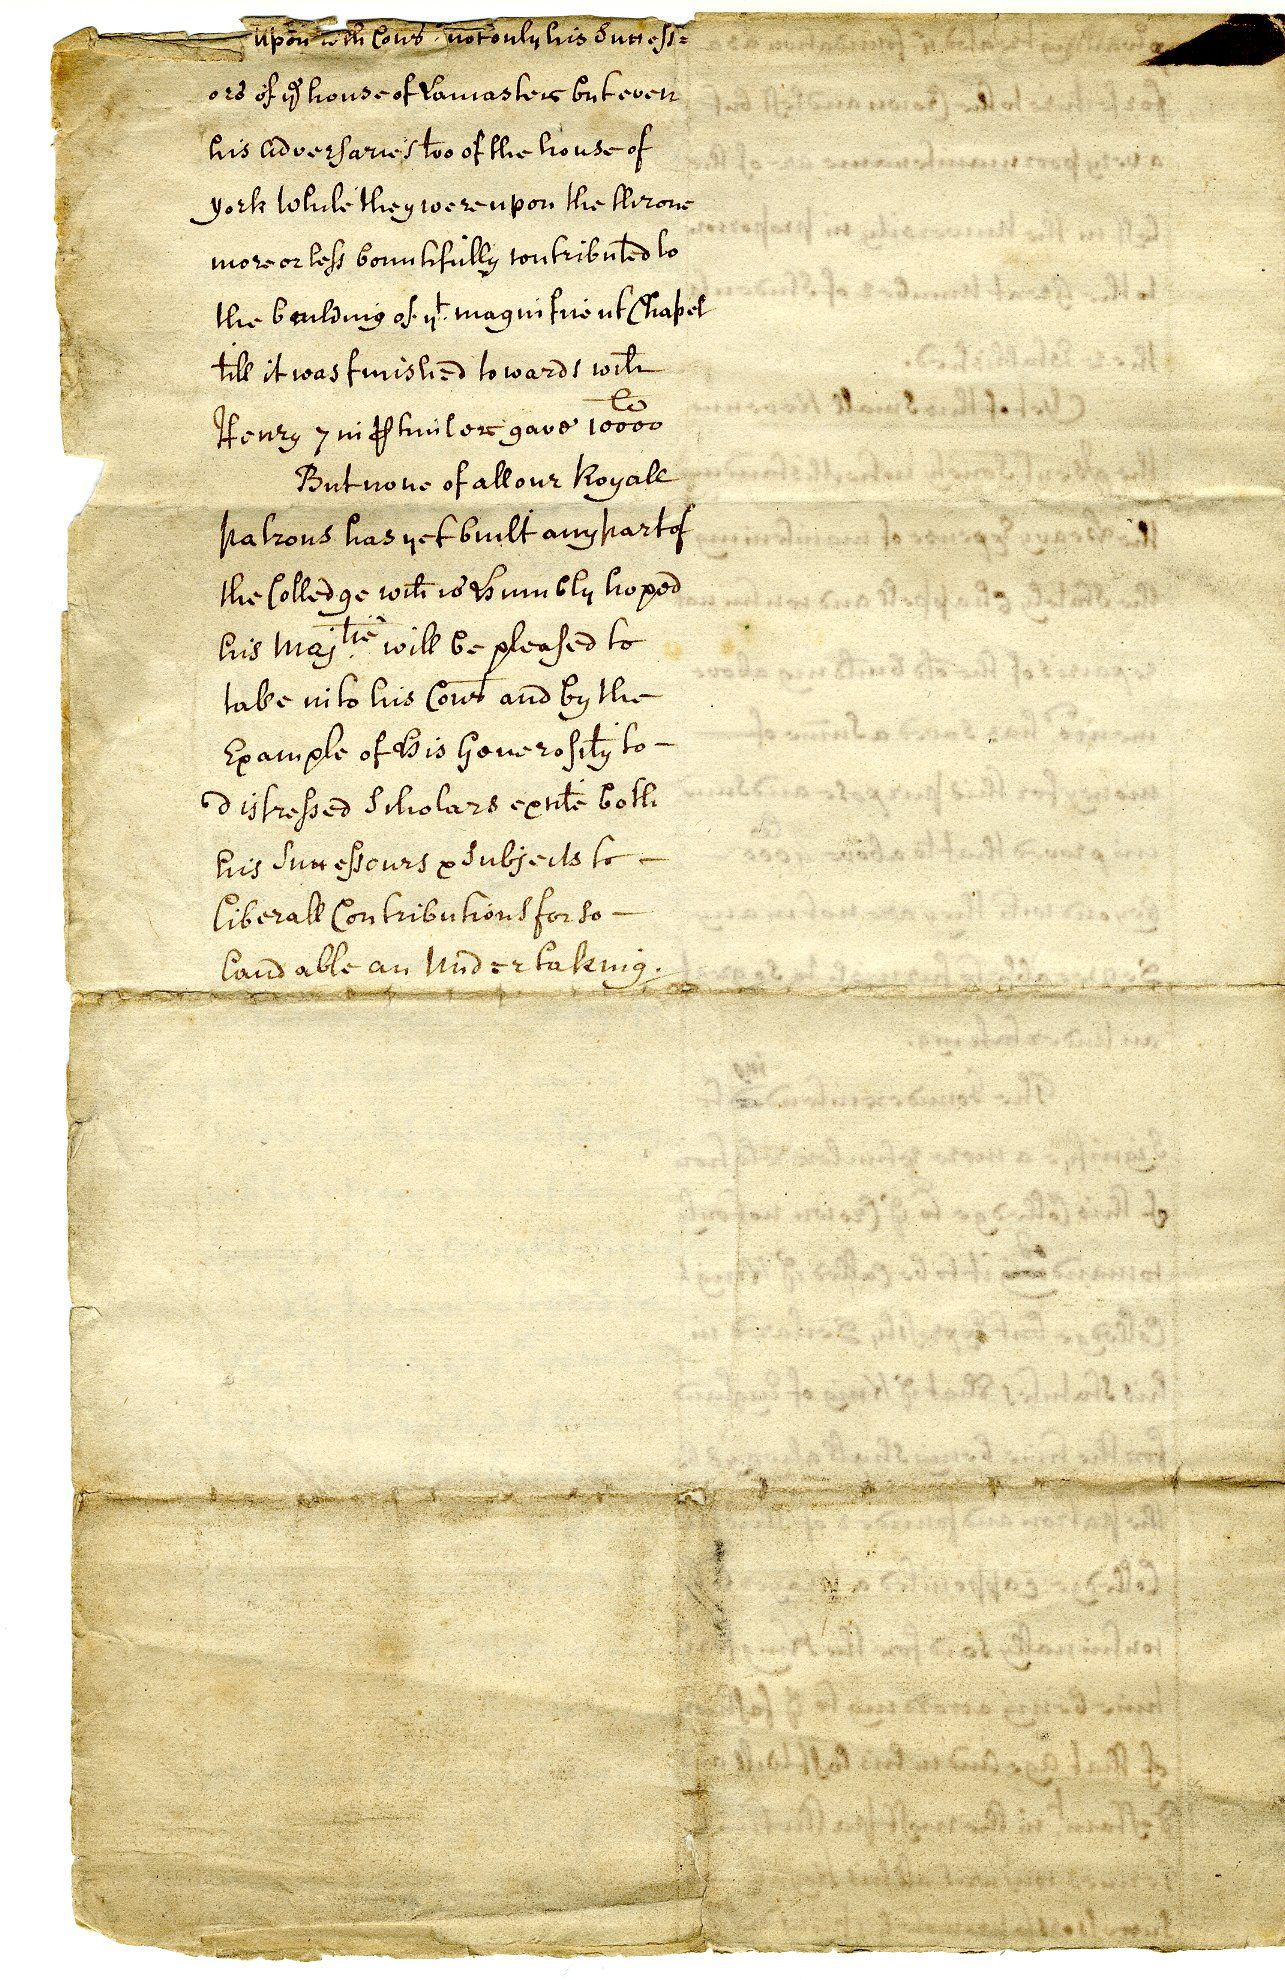 Fourth page of 'The State of the King's Colledge [sic] in Cambridge relating to the present design of building'. A petition to the King for his patronage of the new building scheme, 1600-1700. [GIB/1/2, former ref Coll 1/56]